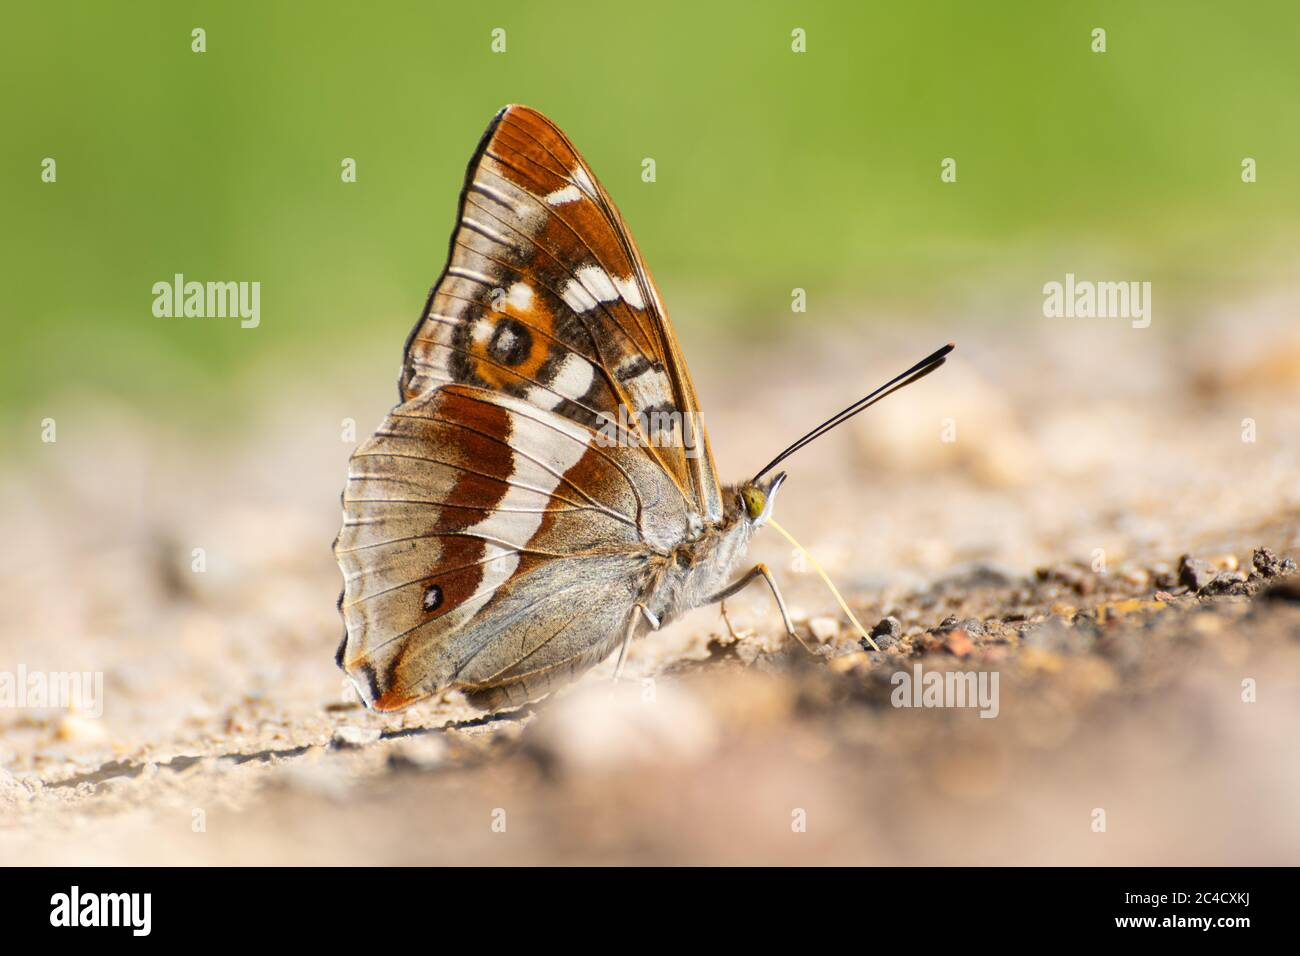 purple-emperor-butterfly-apatura-iris-puddling-on-a-wet-track-to-extract-minerals-in-late-june-uk-2C4CXKJ.jpg